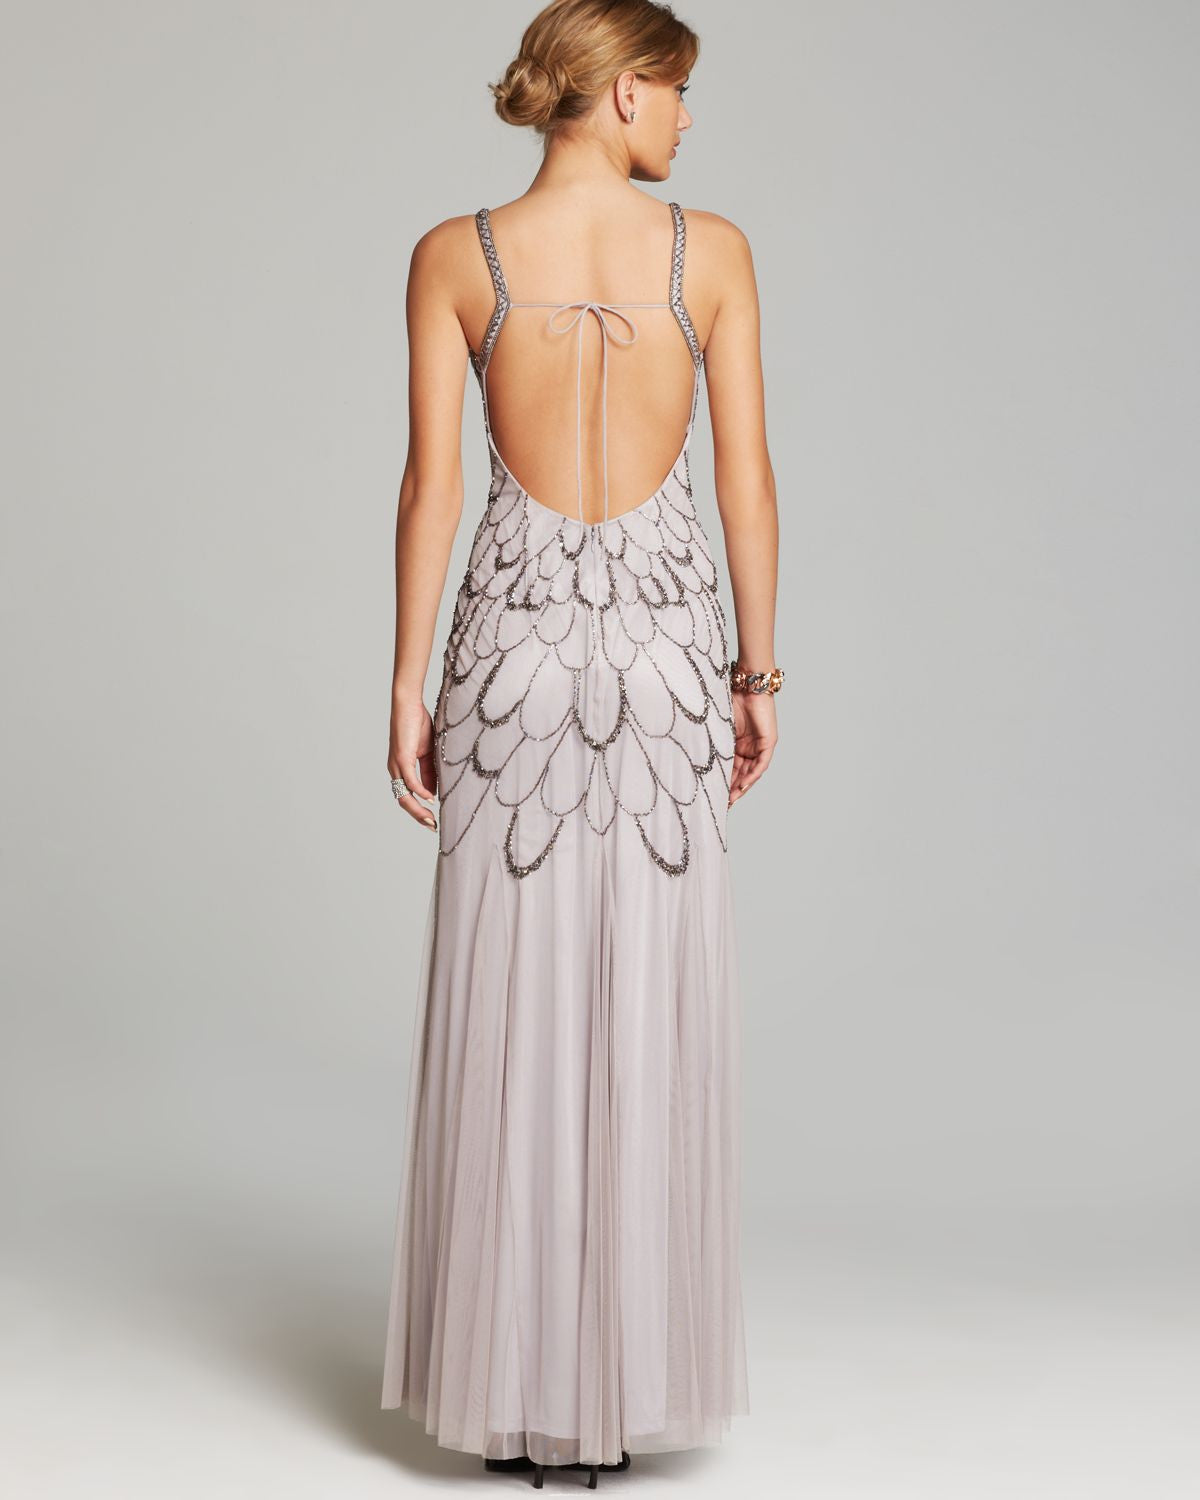 Adrianna Papell Beaded Backless Mesh Art Deco Gown - Heather Grey ...